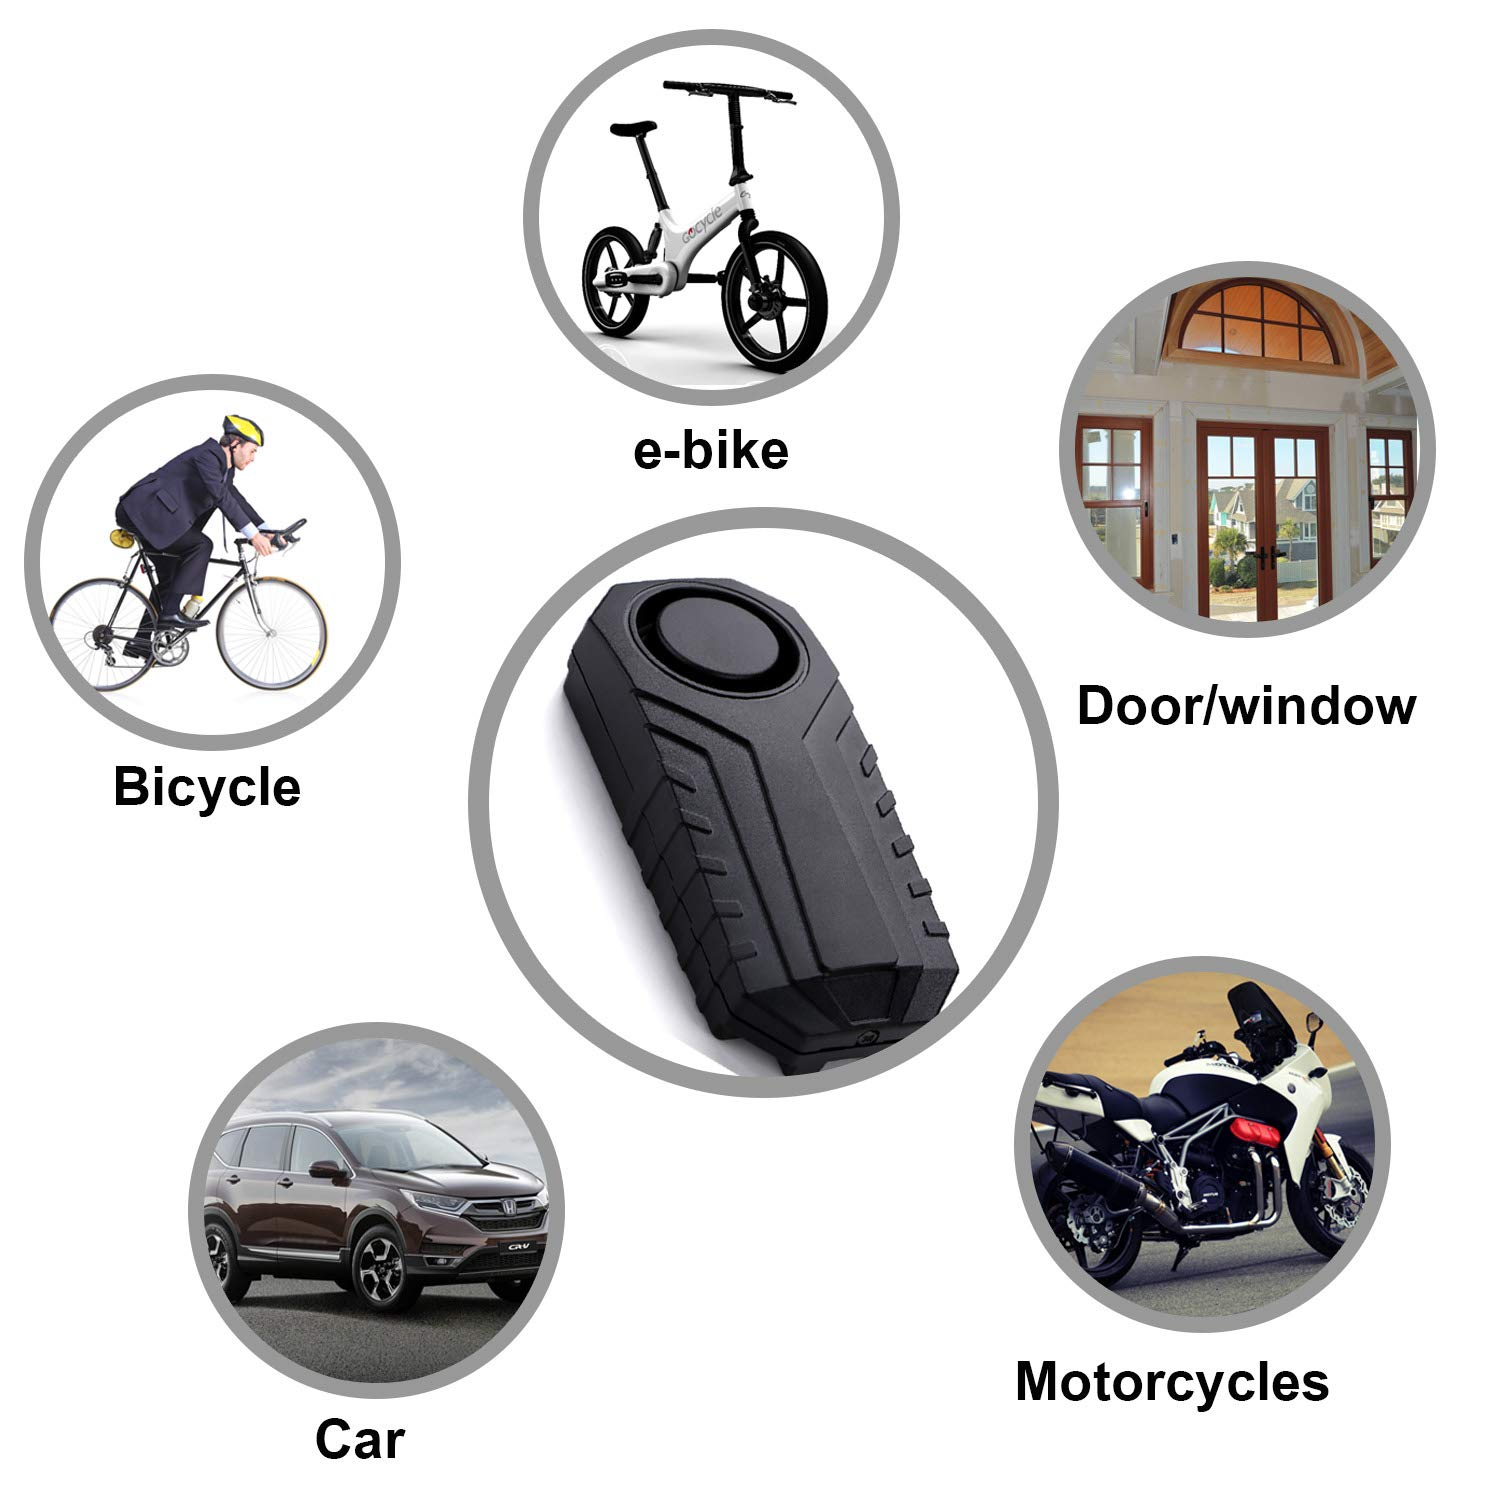 Anti-Theft for Bike Motorcycle Car Vehicles with Remote Control Pack of 1 Lancoon Bicycle Alarm 113 db Super Loud